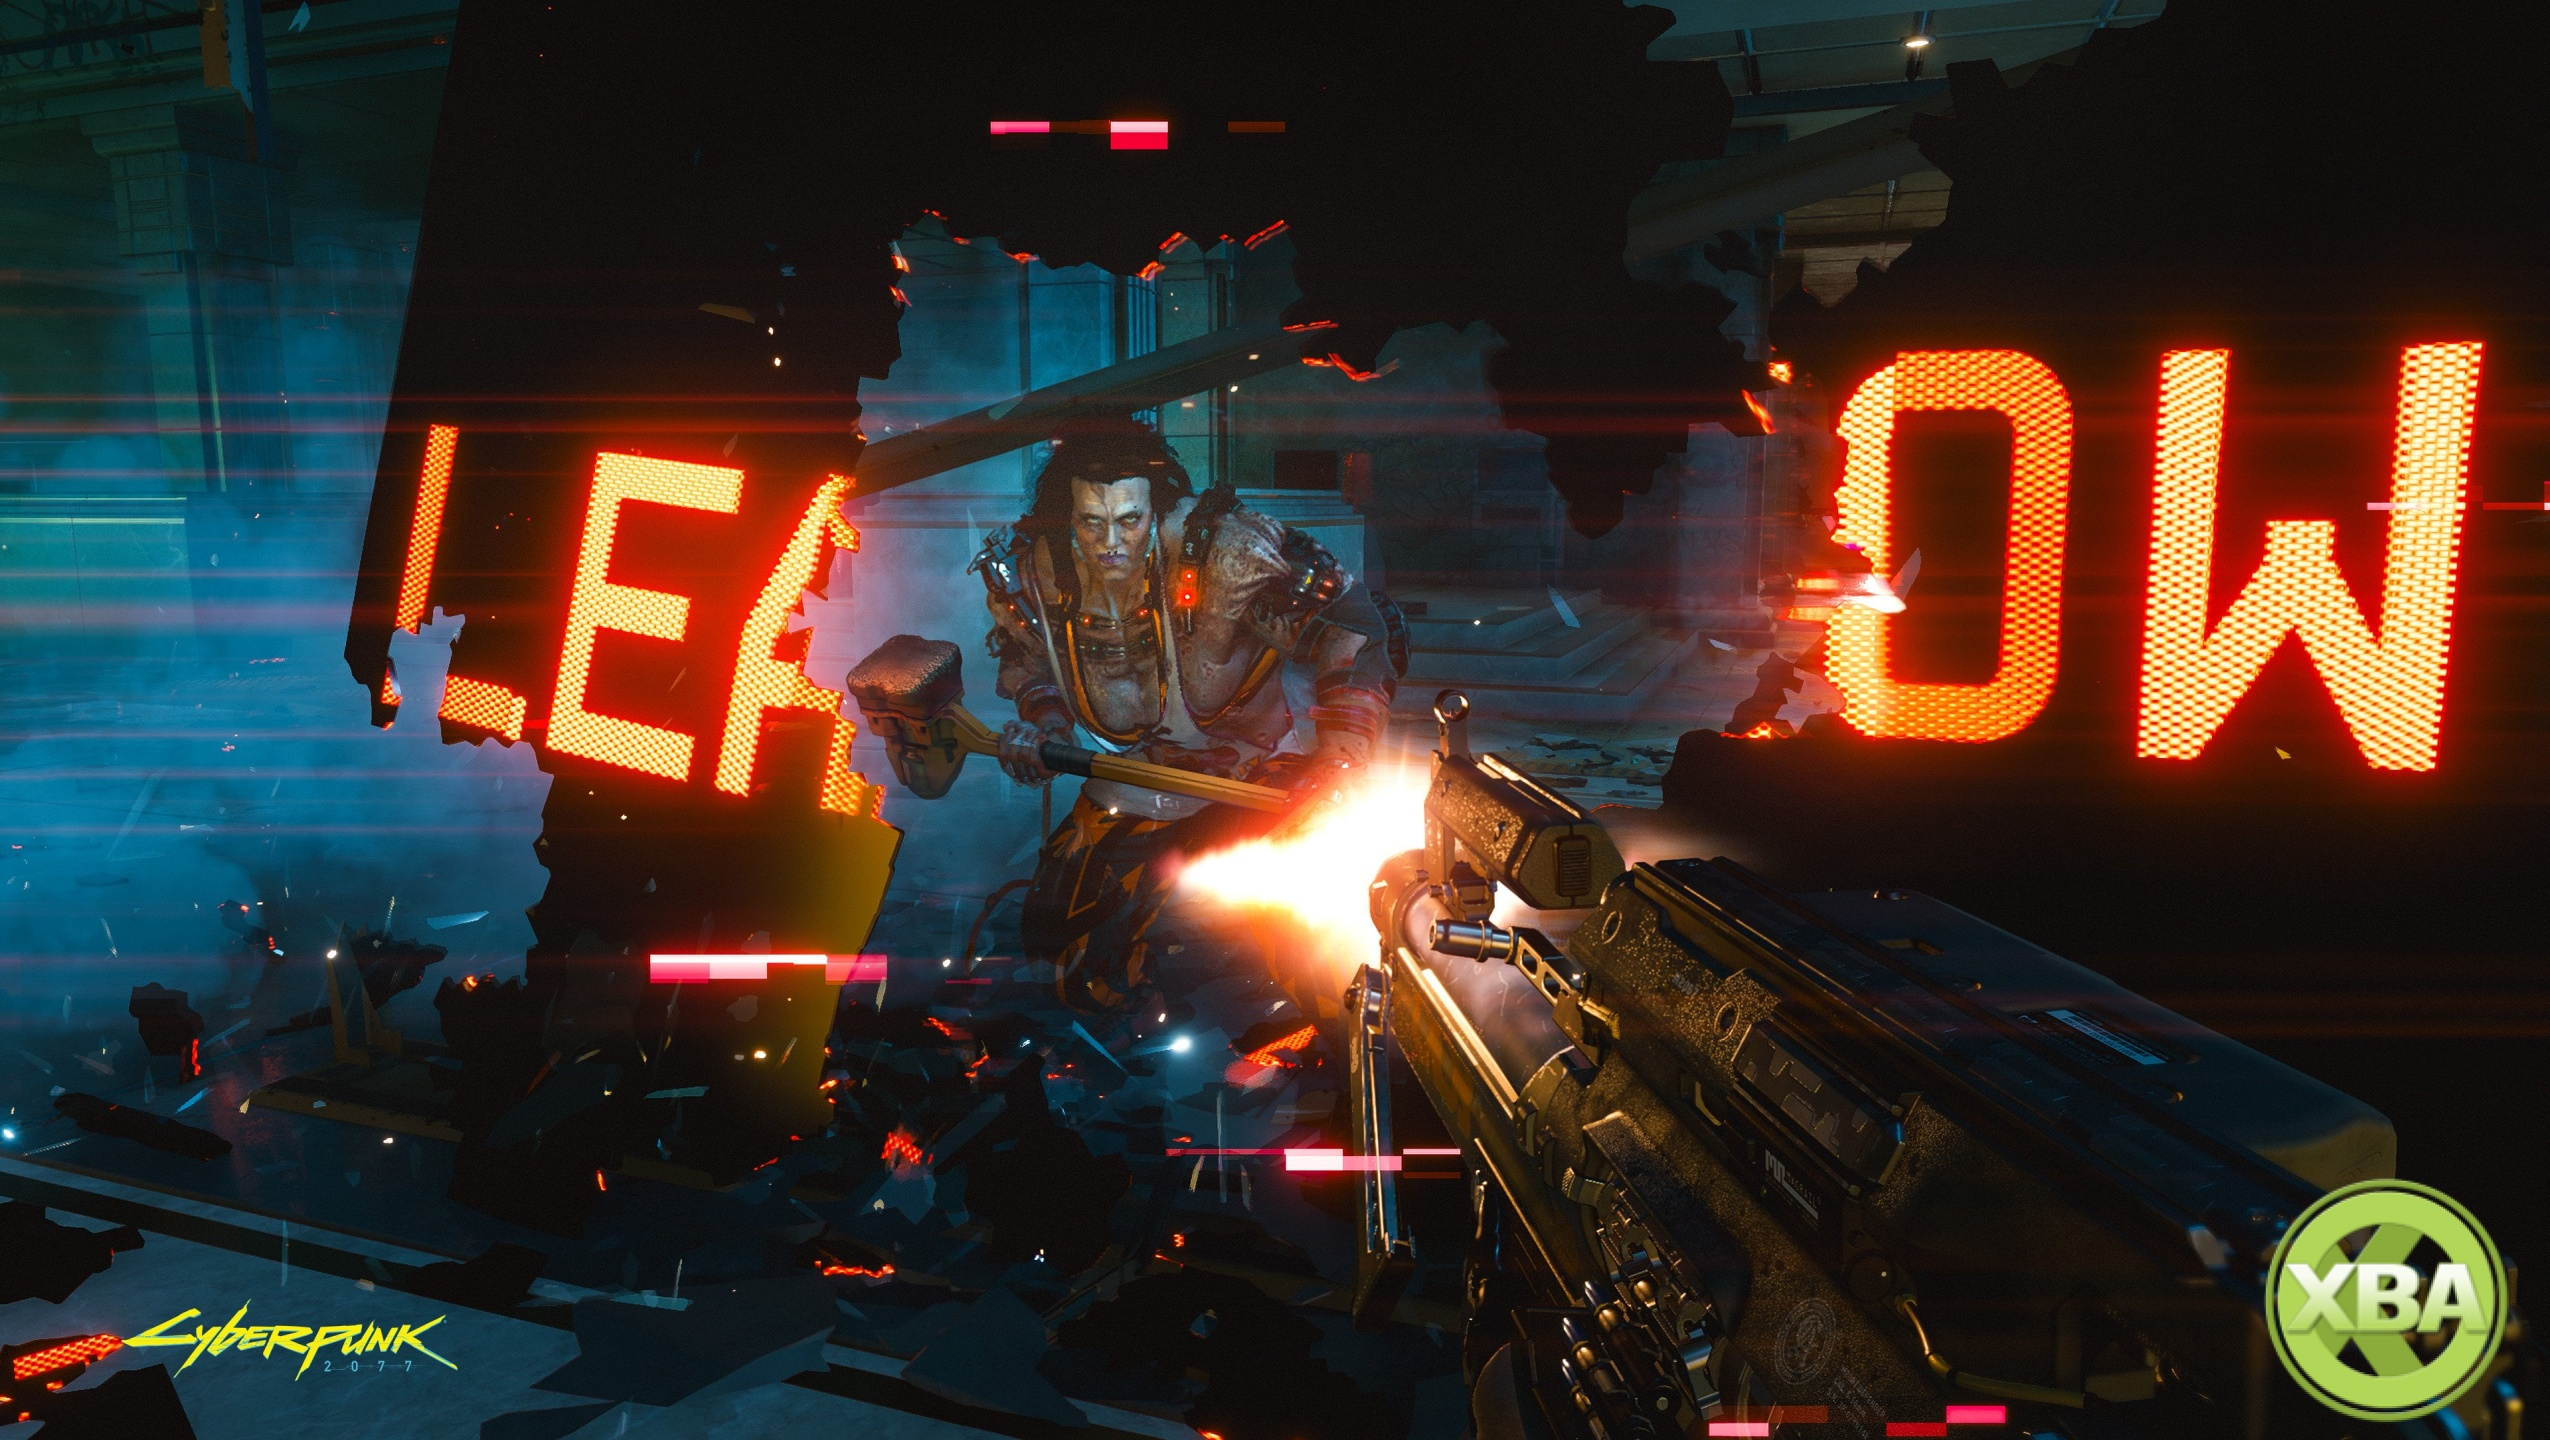 Cyberpunk 2077 Reportedly Getting New Game Plus Mode - Xbox One